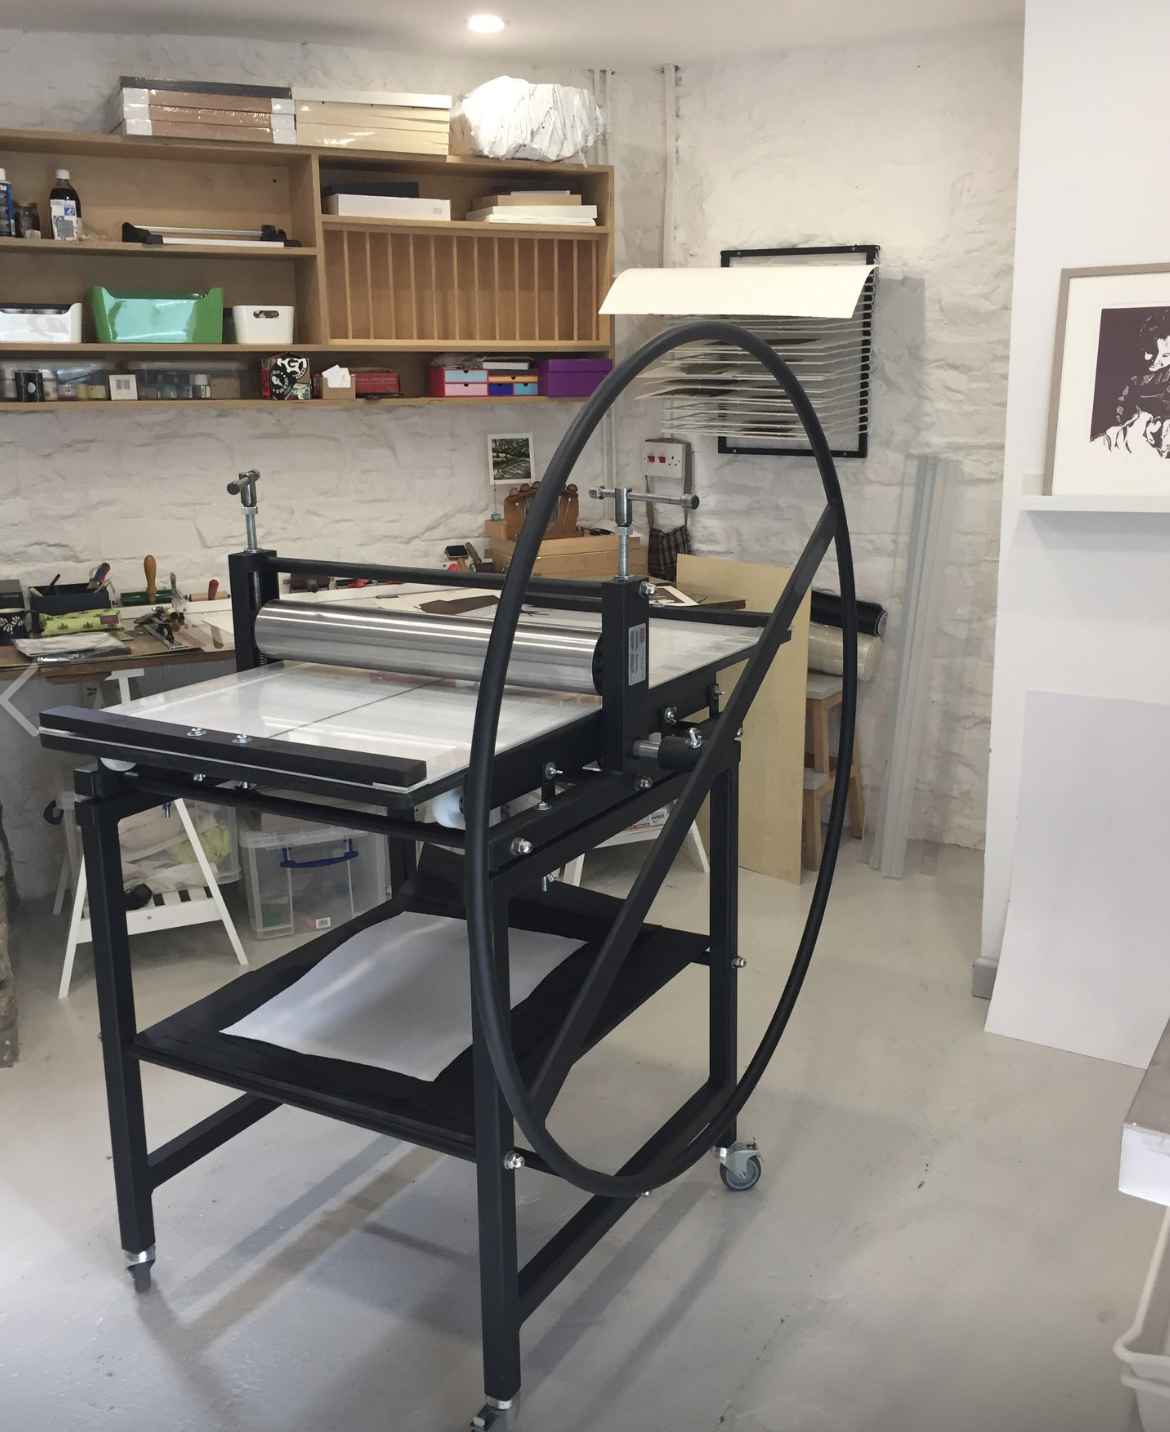 Studio with Ironbridge etching press